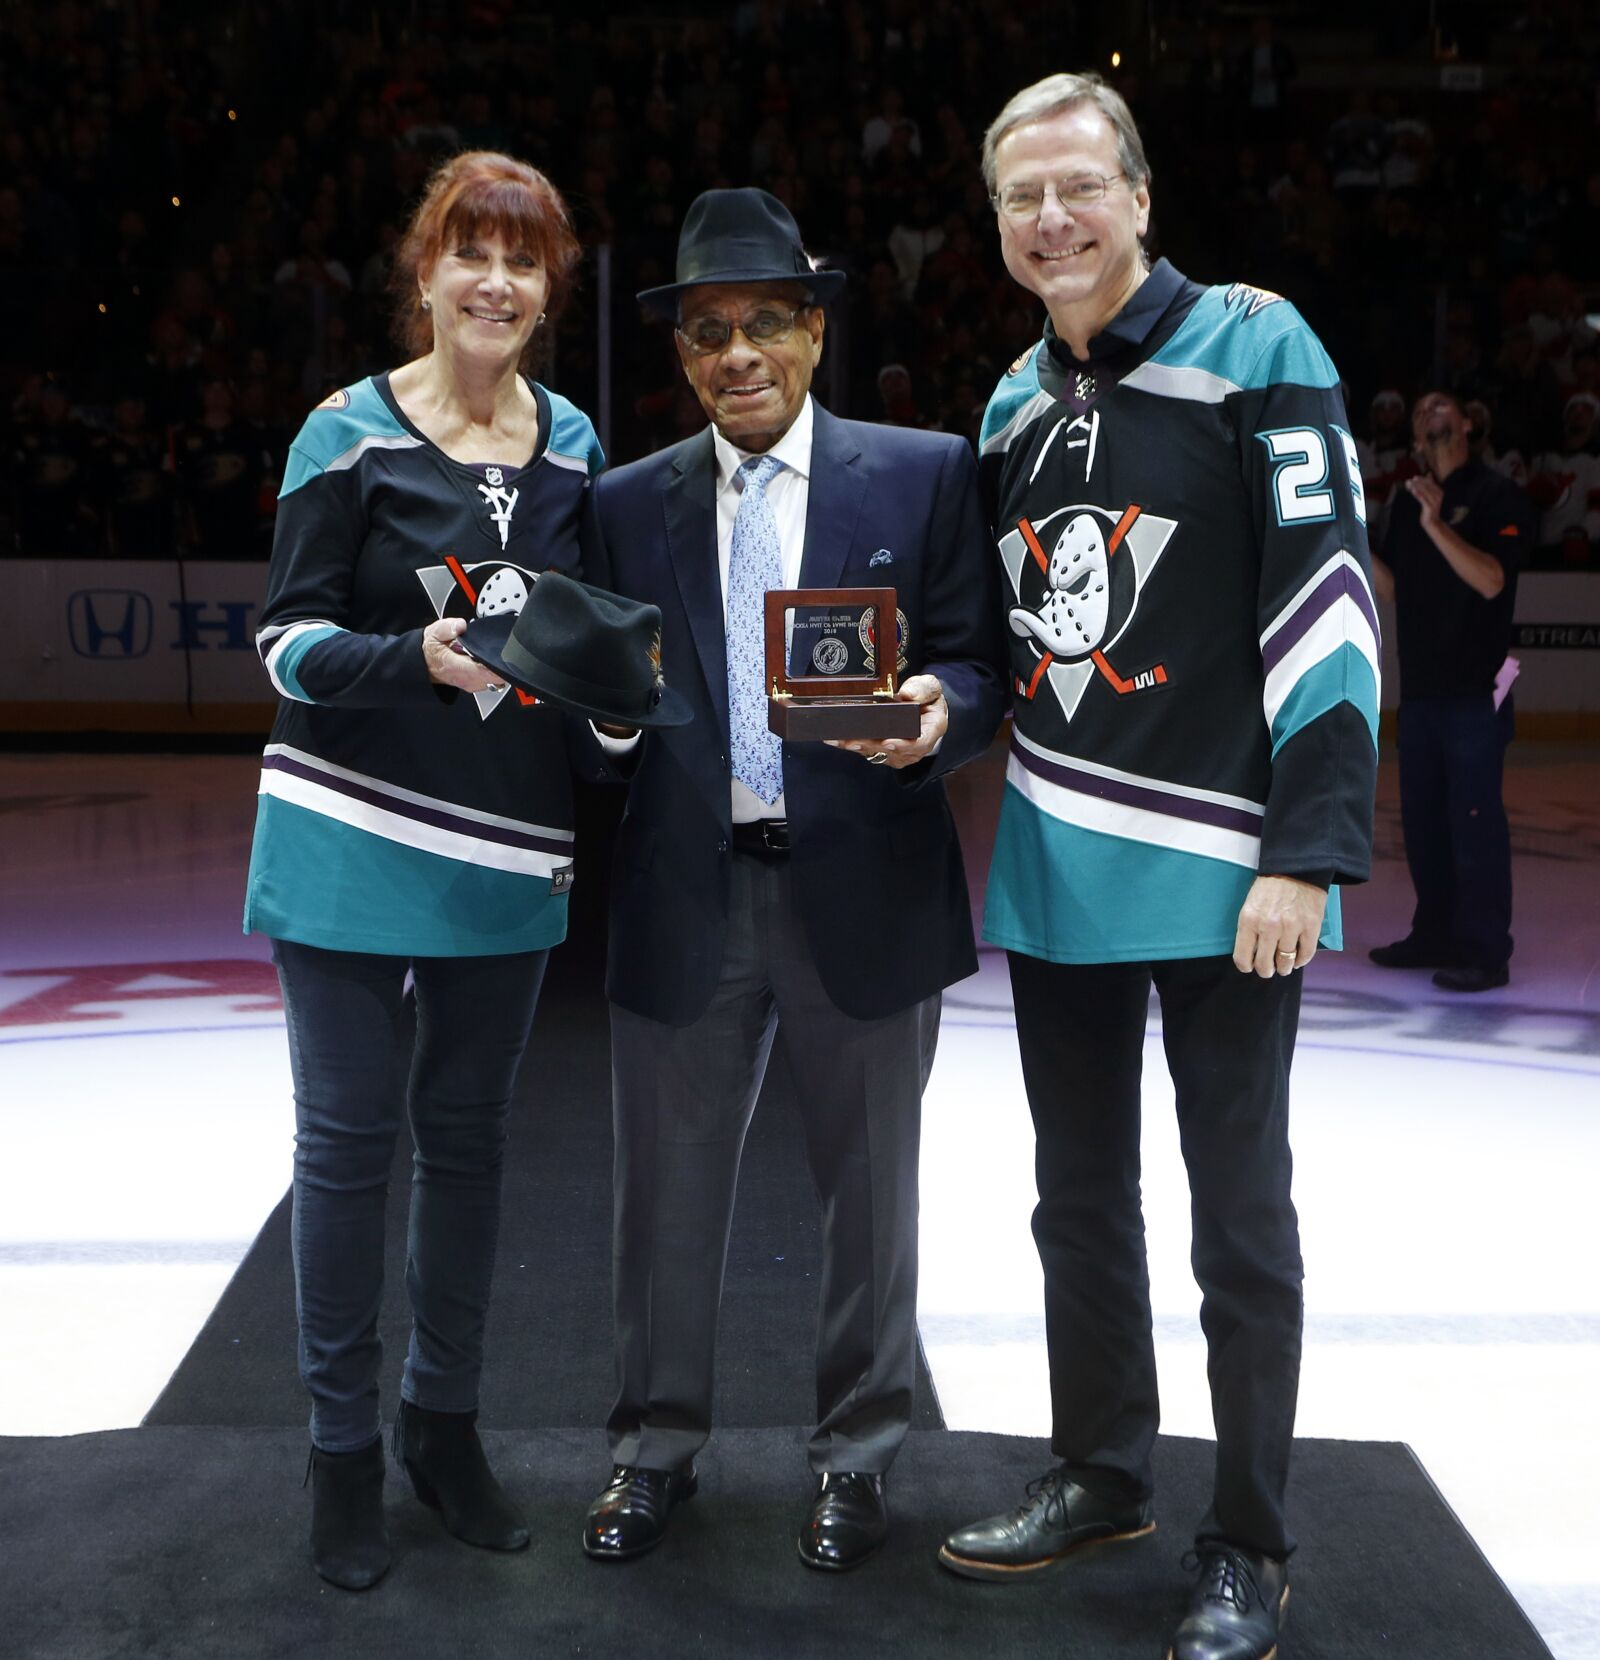 The NHL, the Anaheim Ducks, and Diversity: Room for Improvement